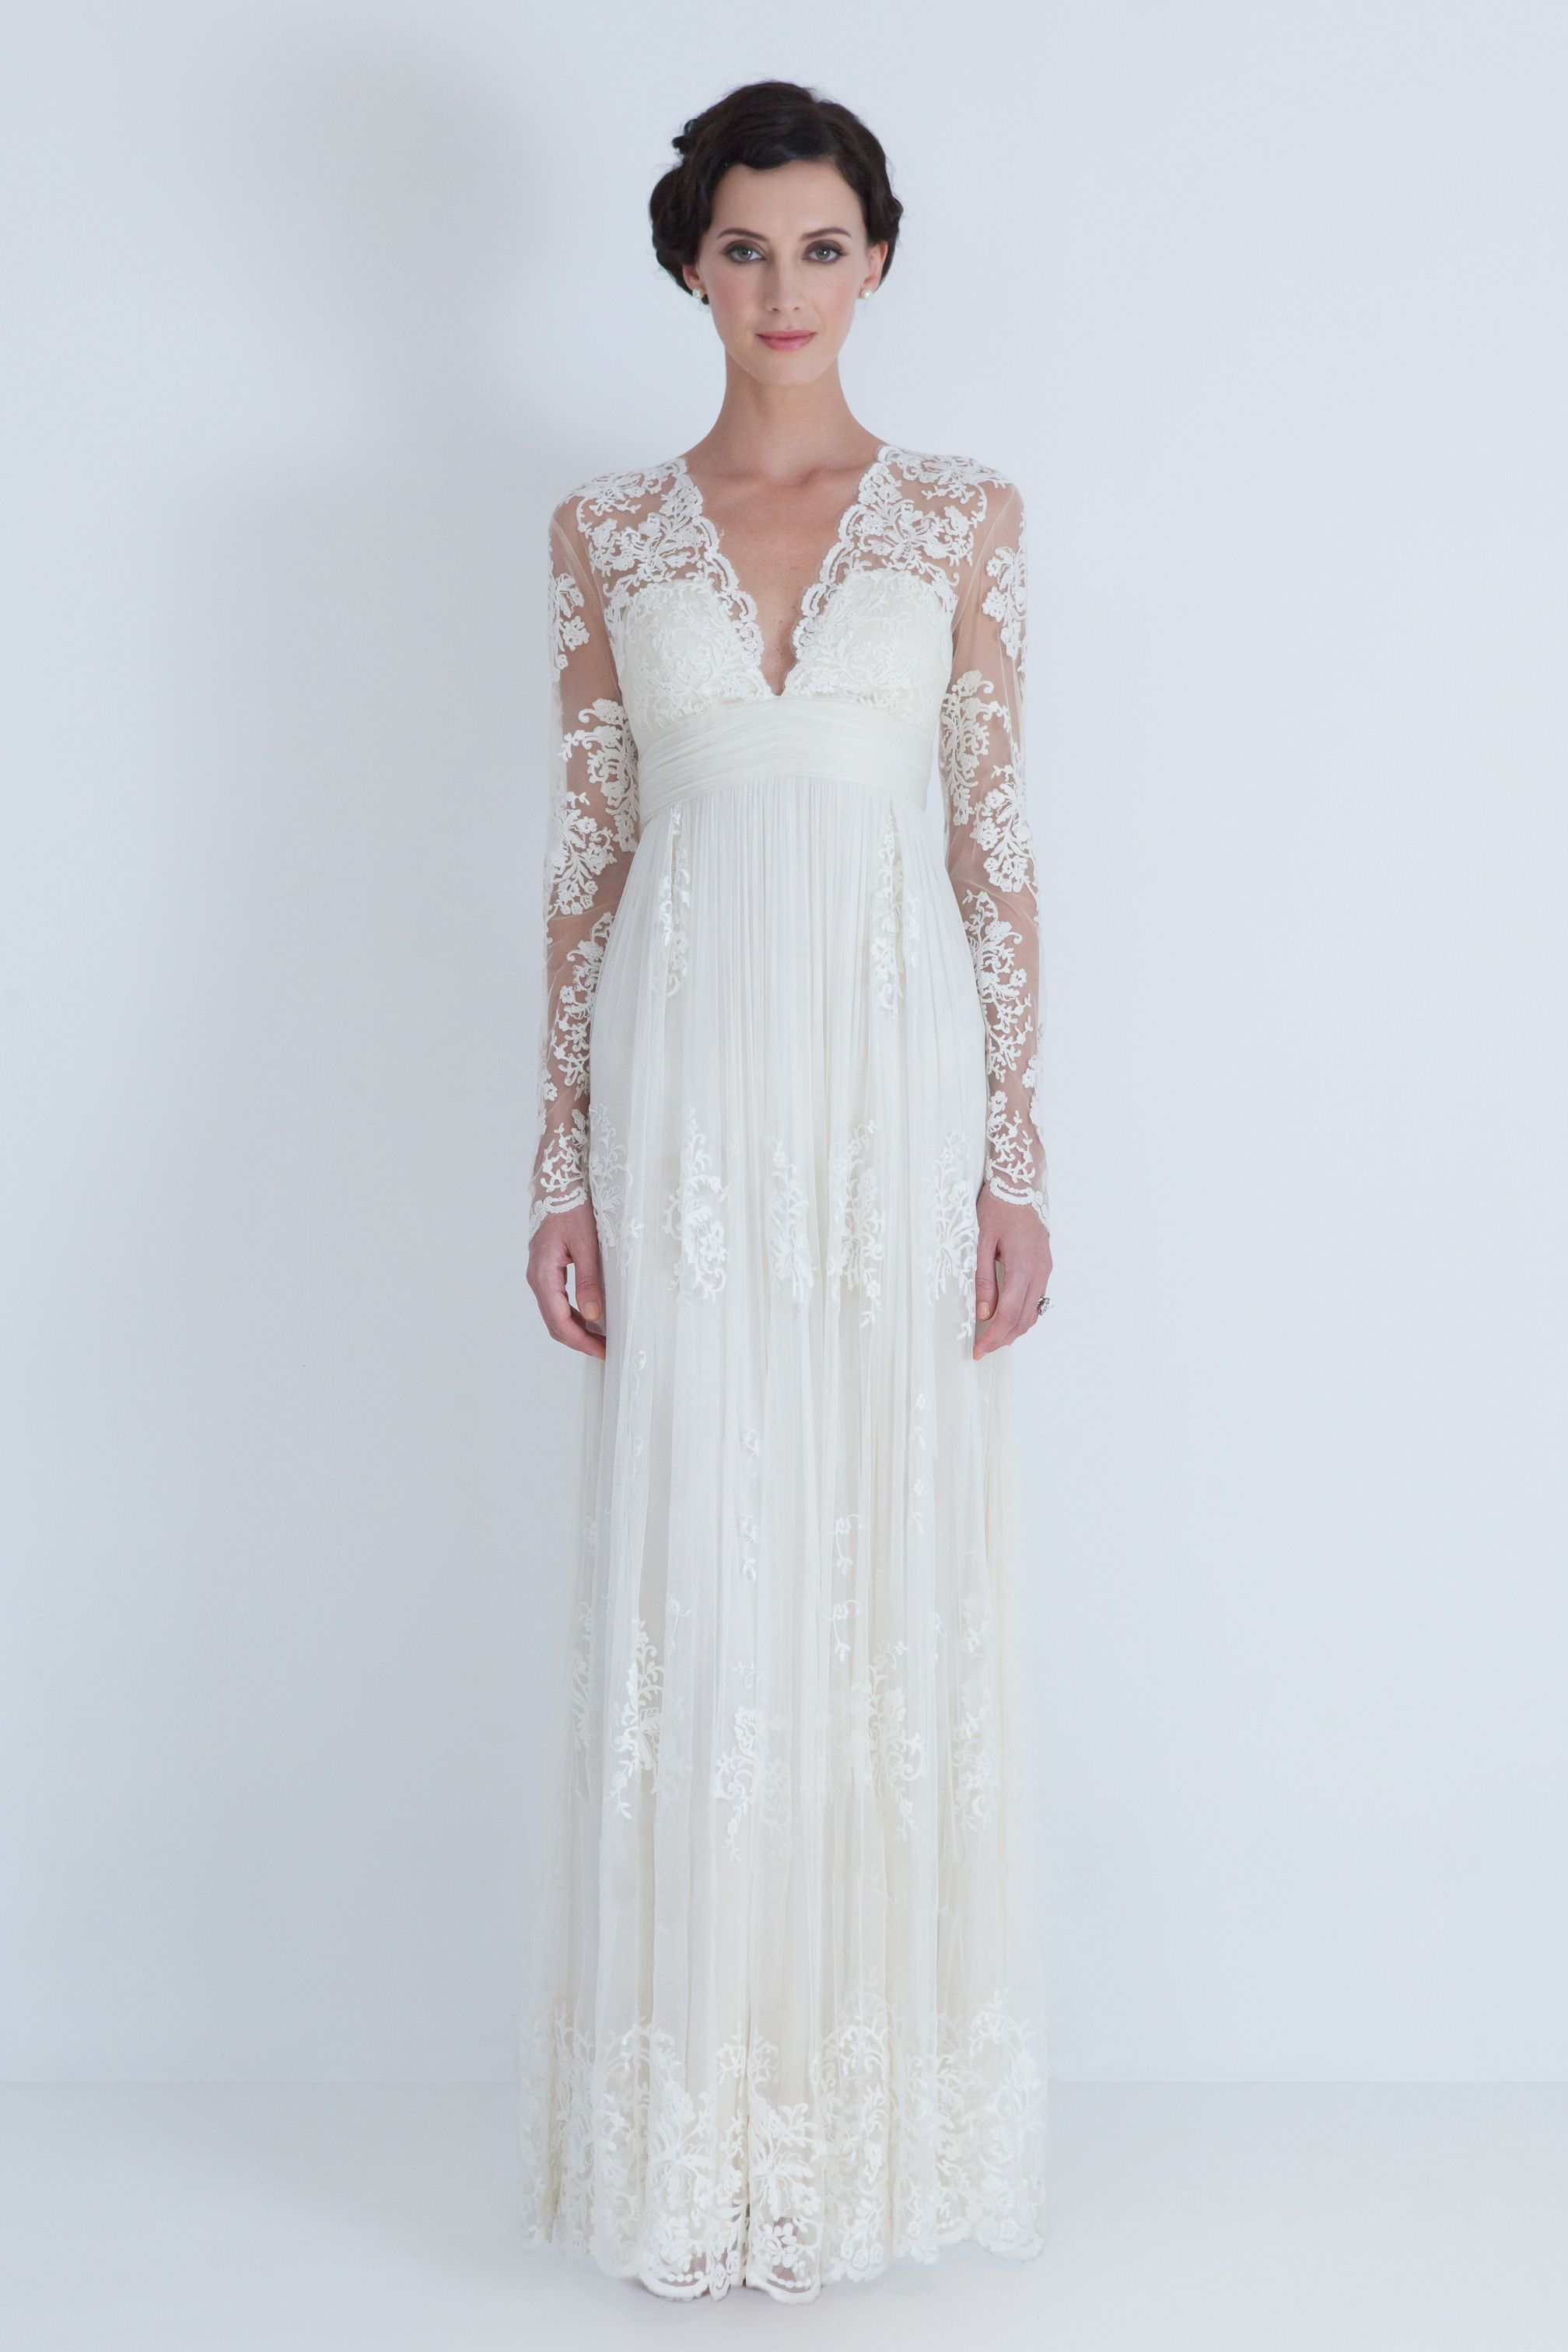 Long sleeved lace wedding dress  Long Sleeved Lace wedding Dress  The uWu day  Pinterest  Lace